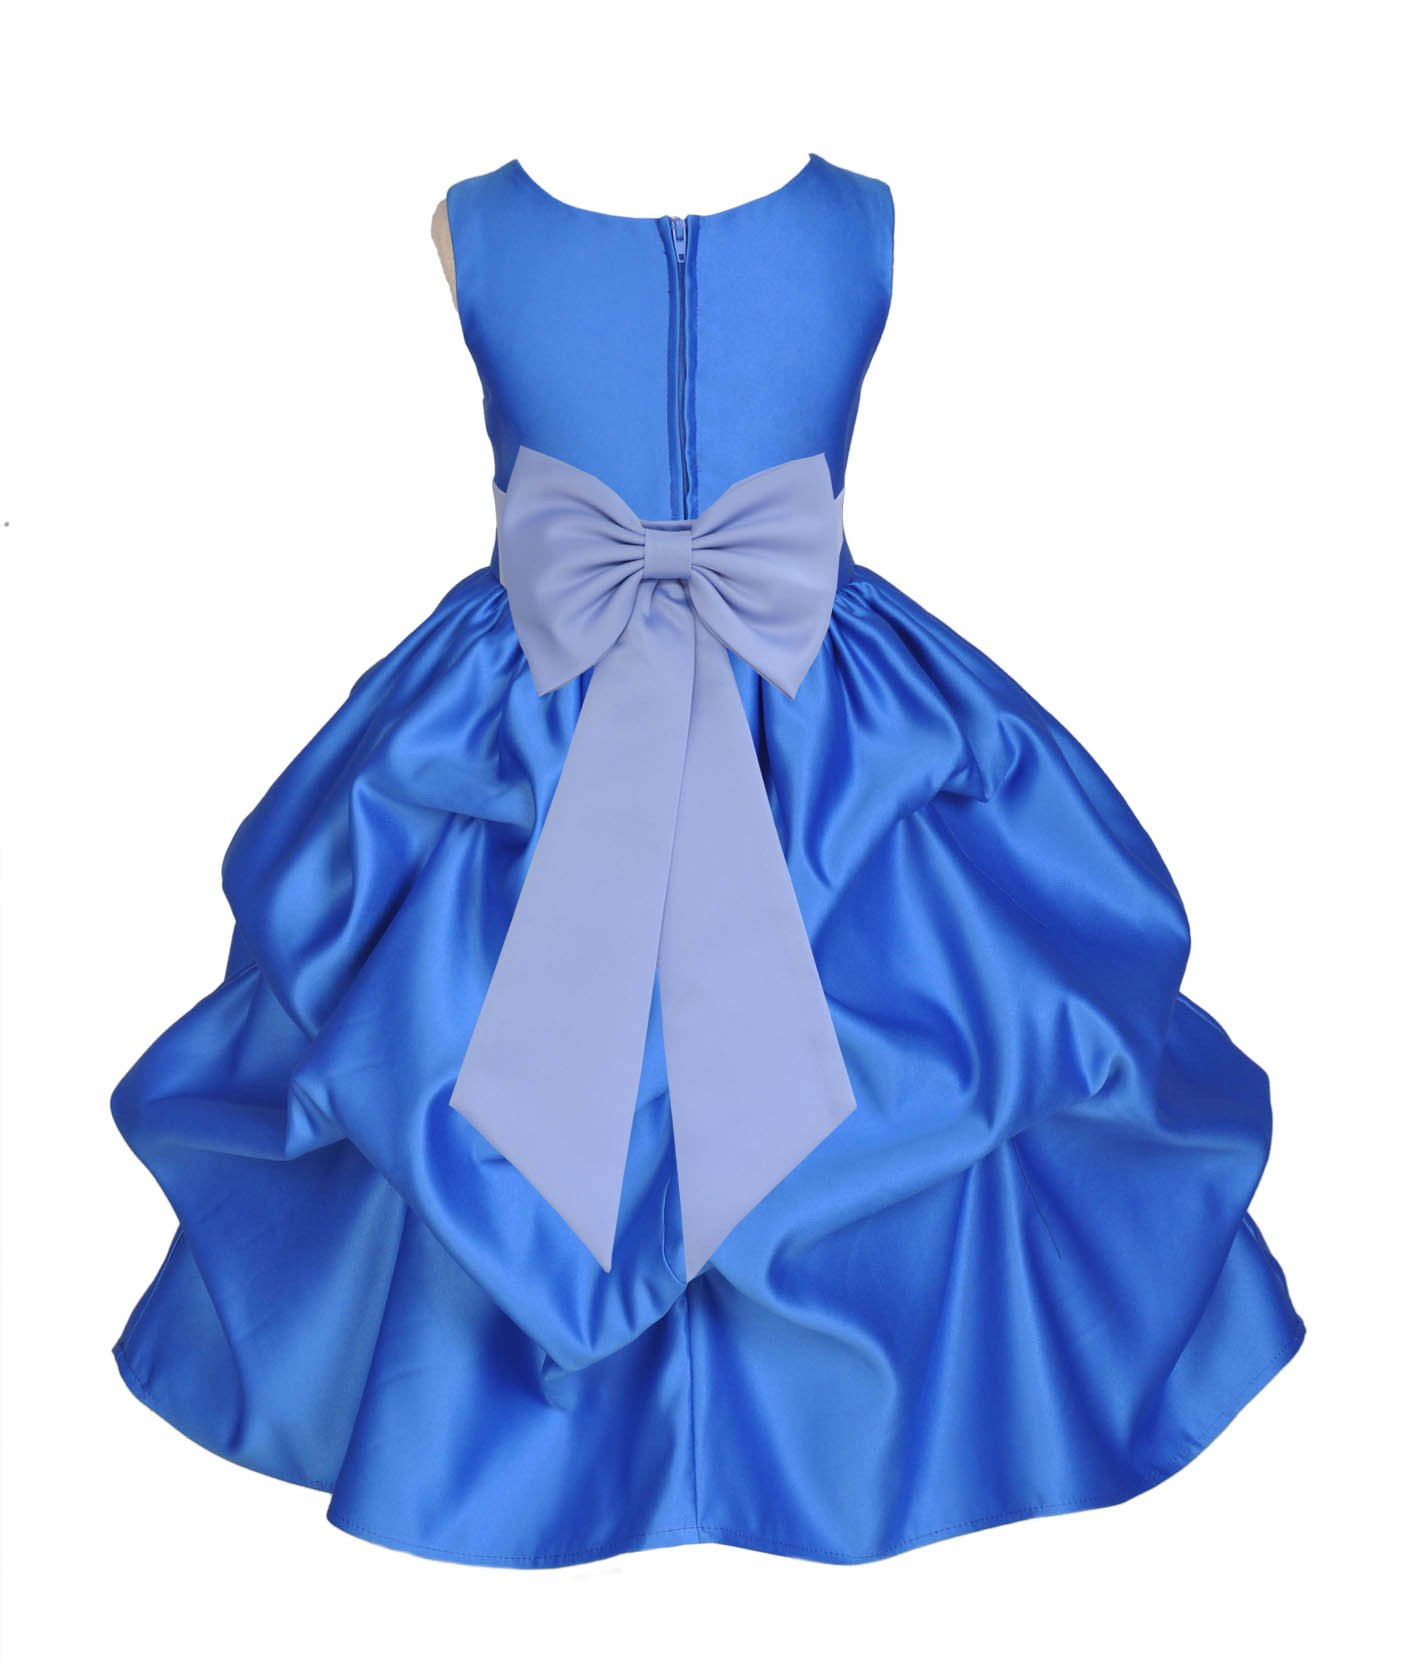 8f71b7d57b2 Royal Blue Pick-up Satin Flower Girl Dress Princess Bridesmaid Beauty  Pageant Holiday Special Occasions 208T2